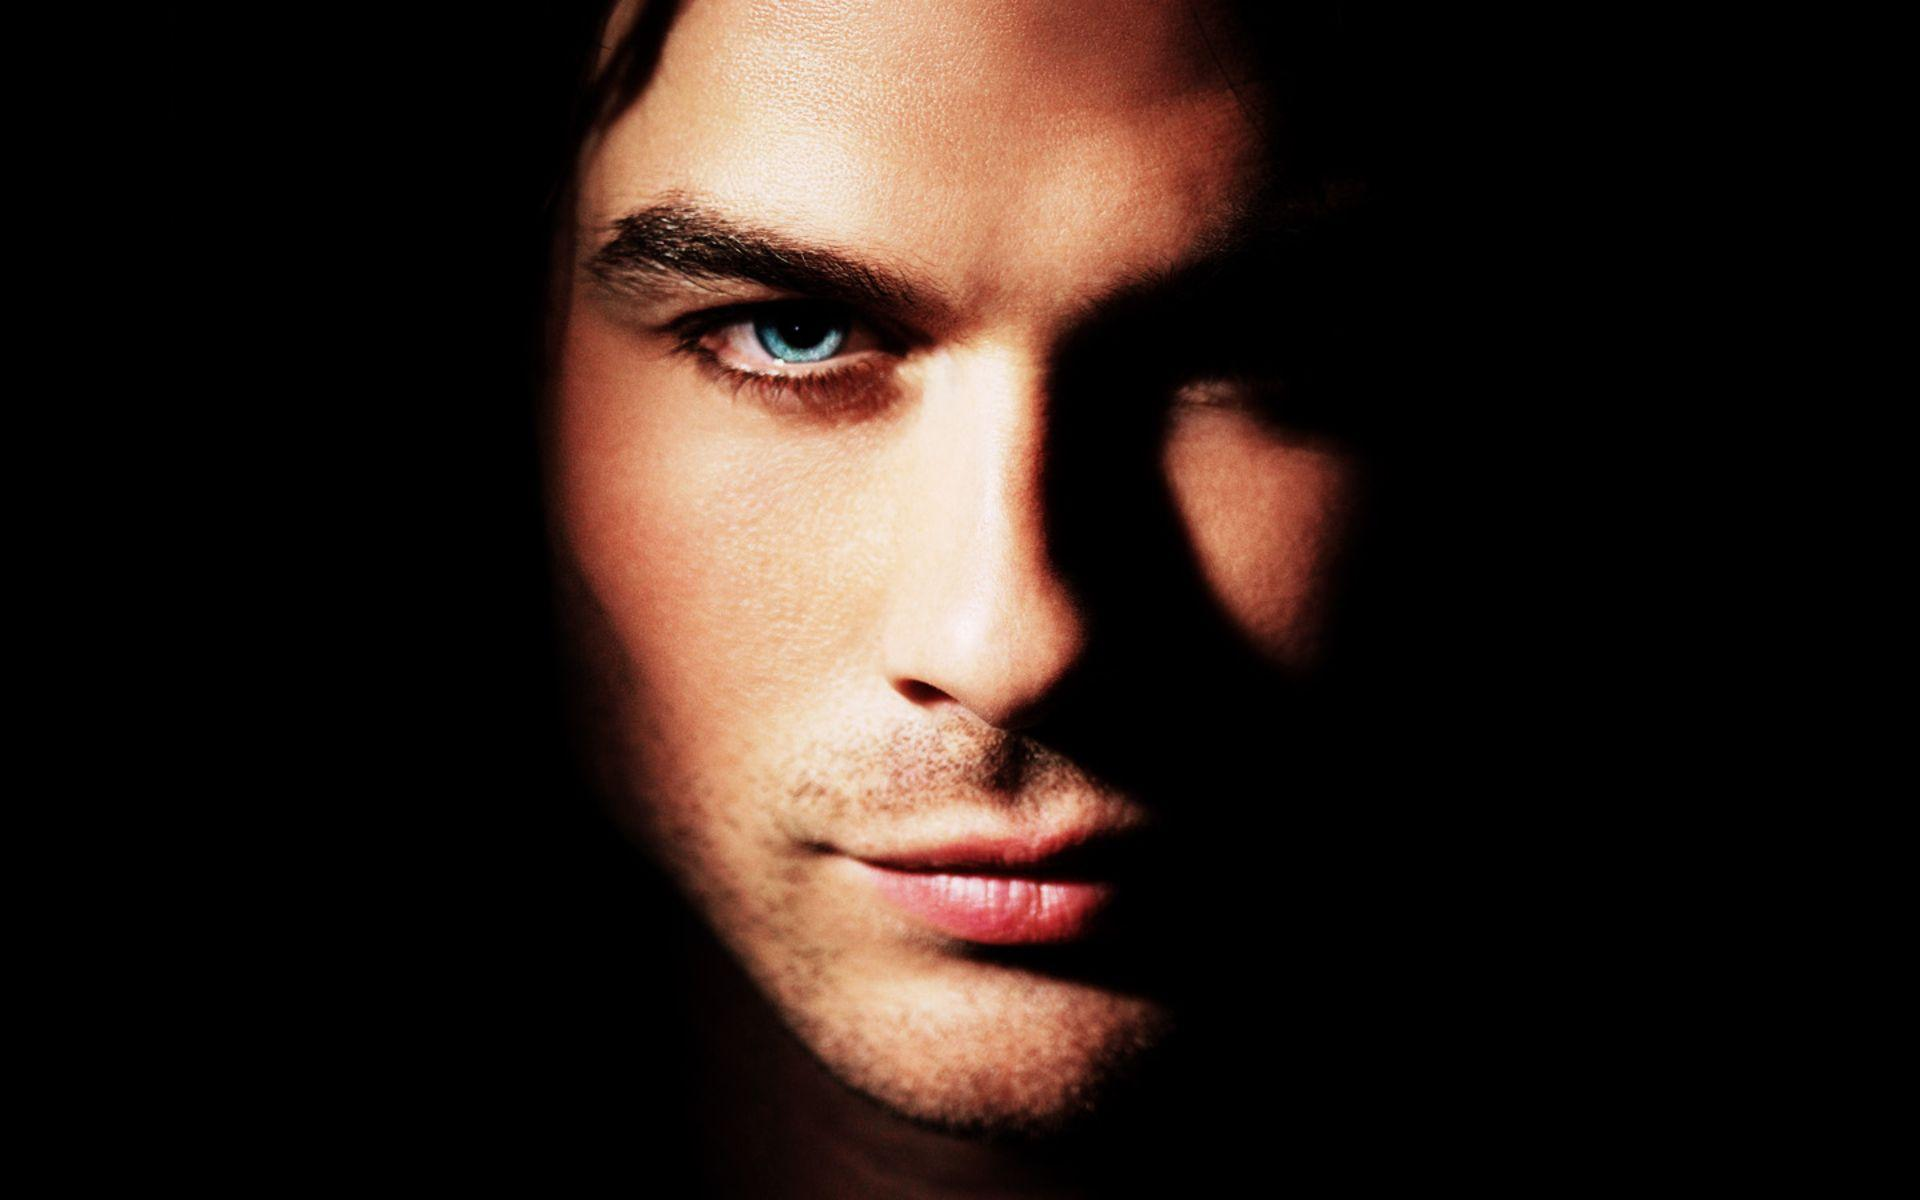 damon salvatore backgrounds Gallery